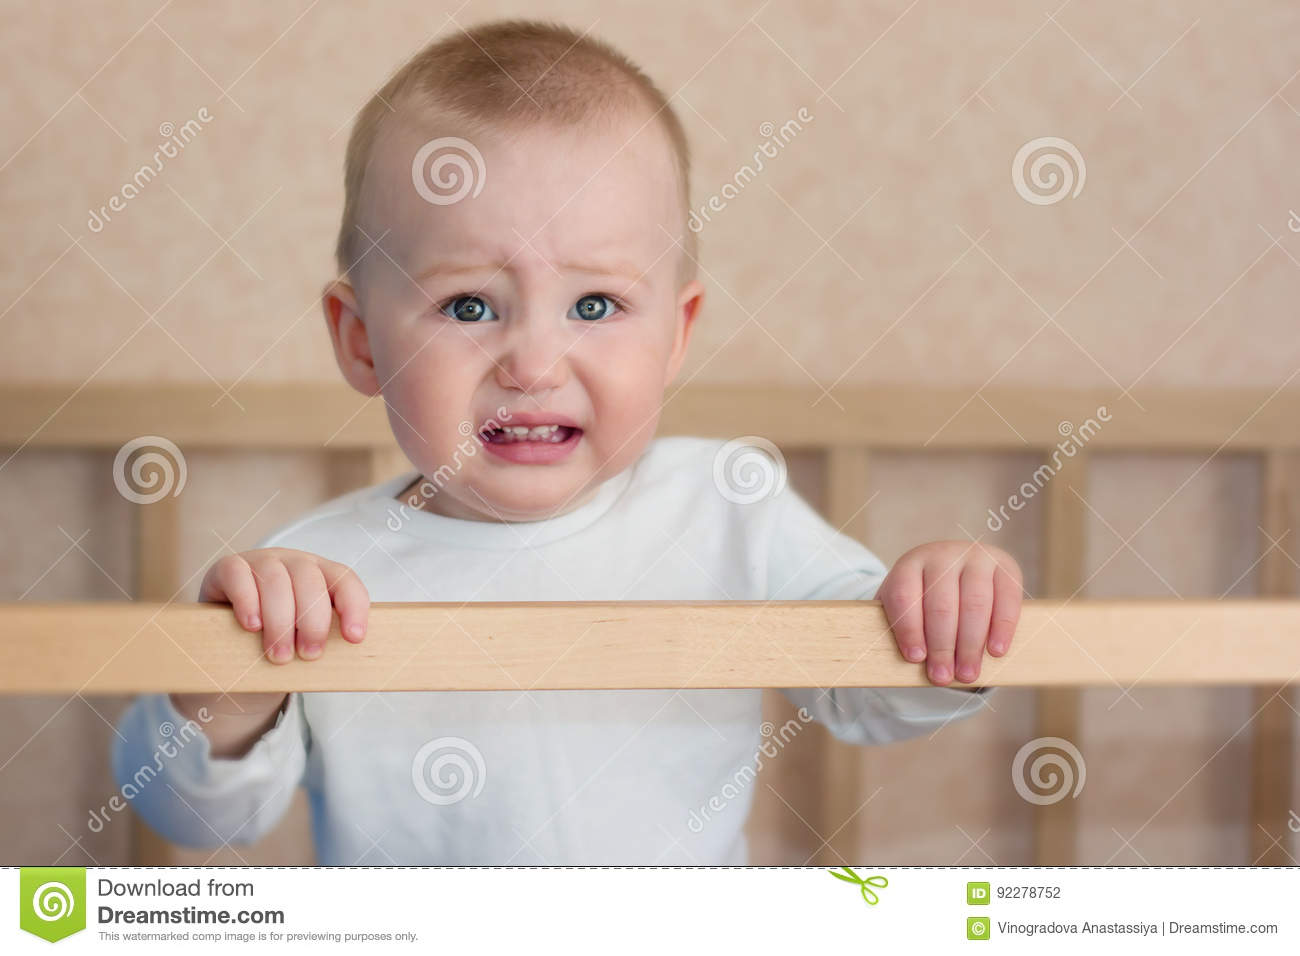 Baby cry in cot